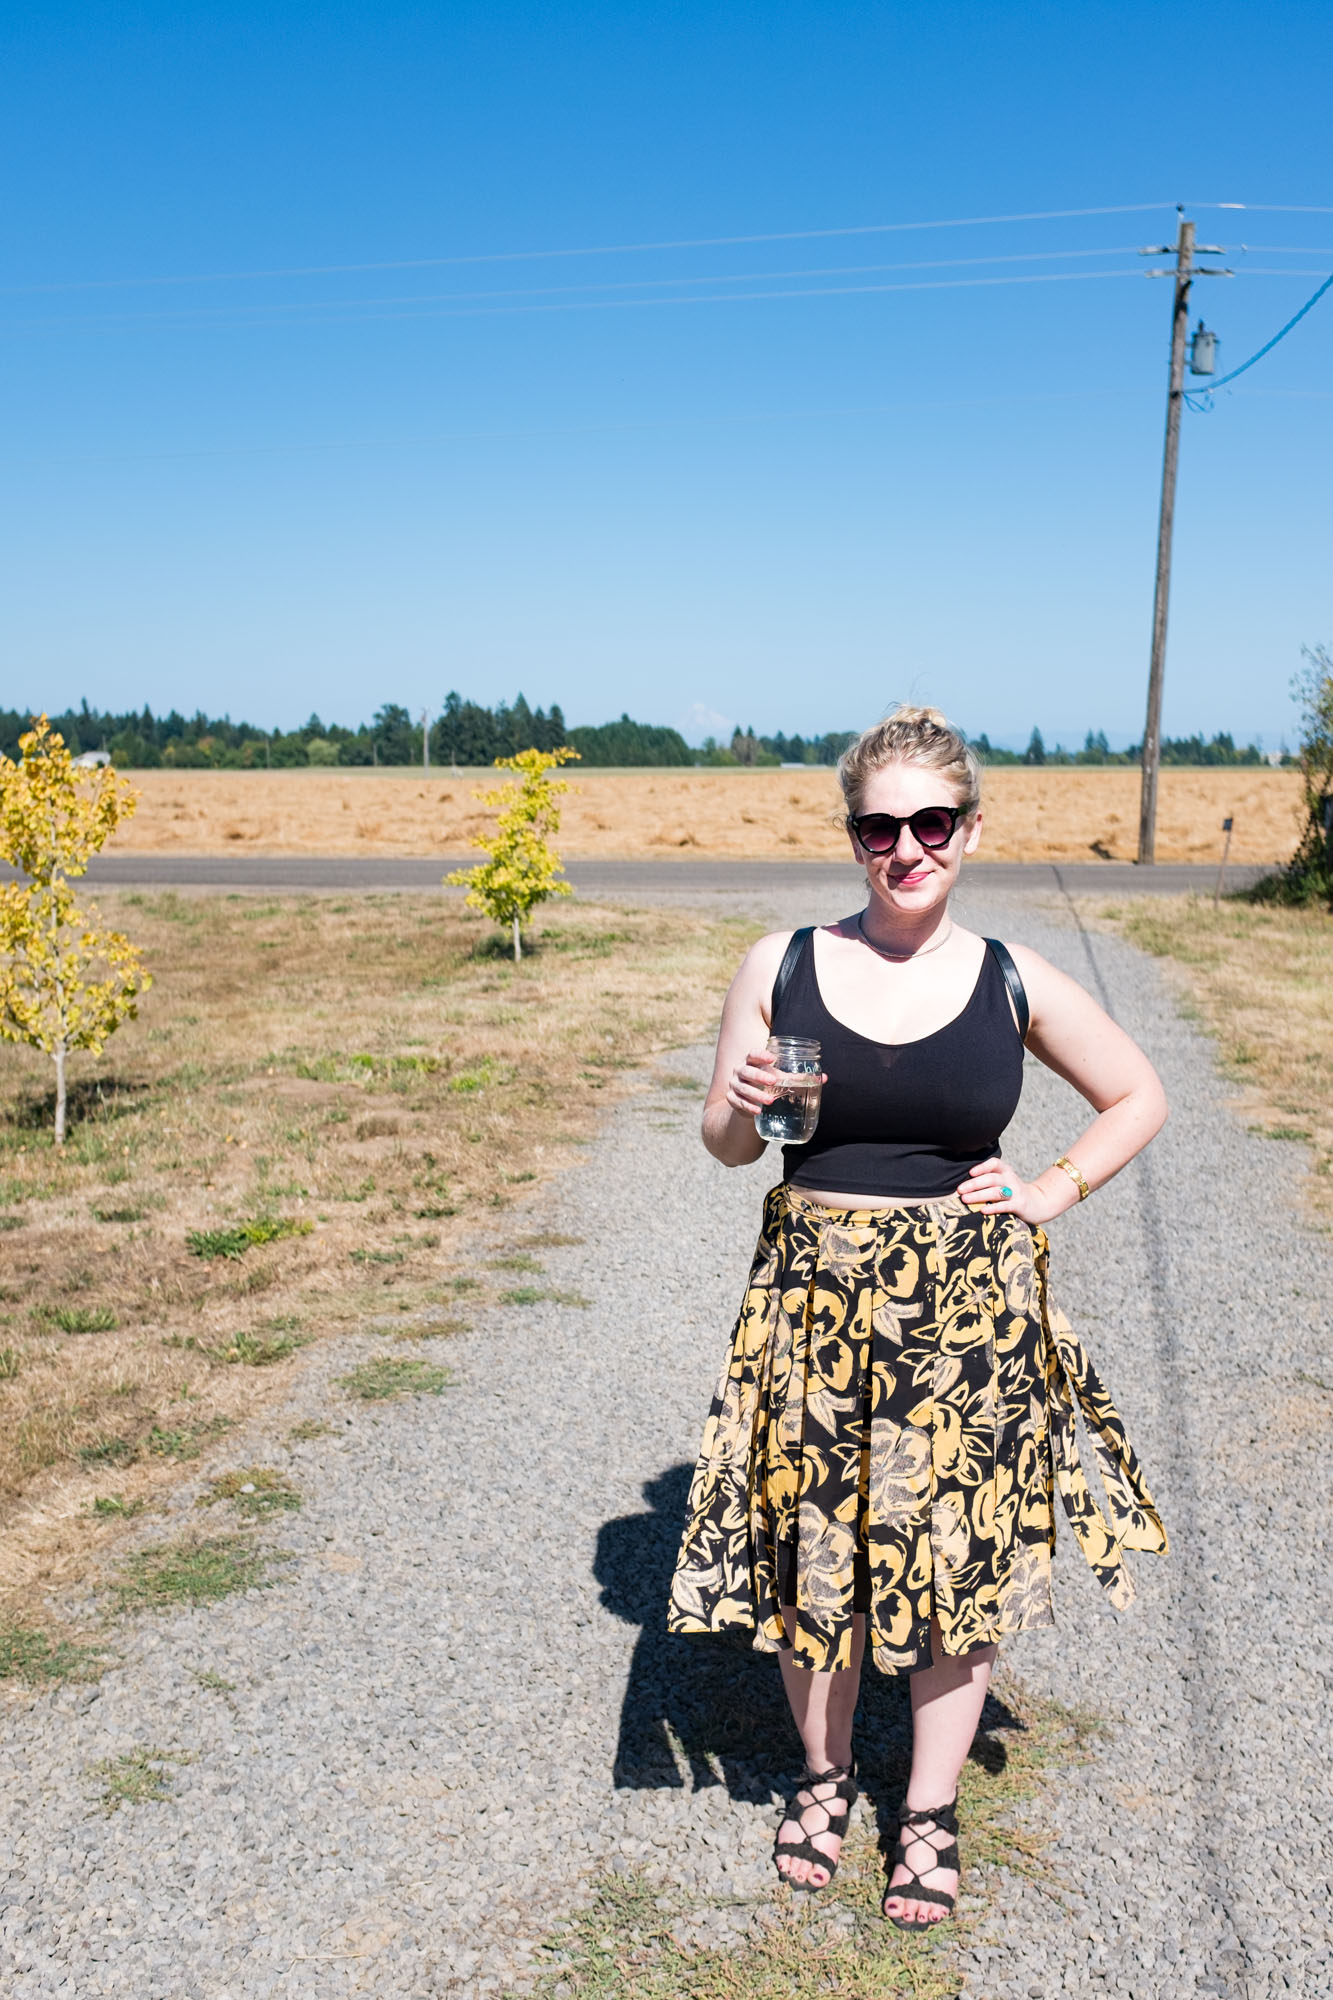 a confident lady stands in a gravel drive way holding a drink on a clear sunny day in Oregon